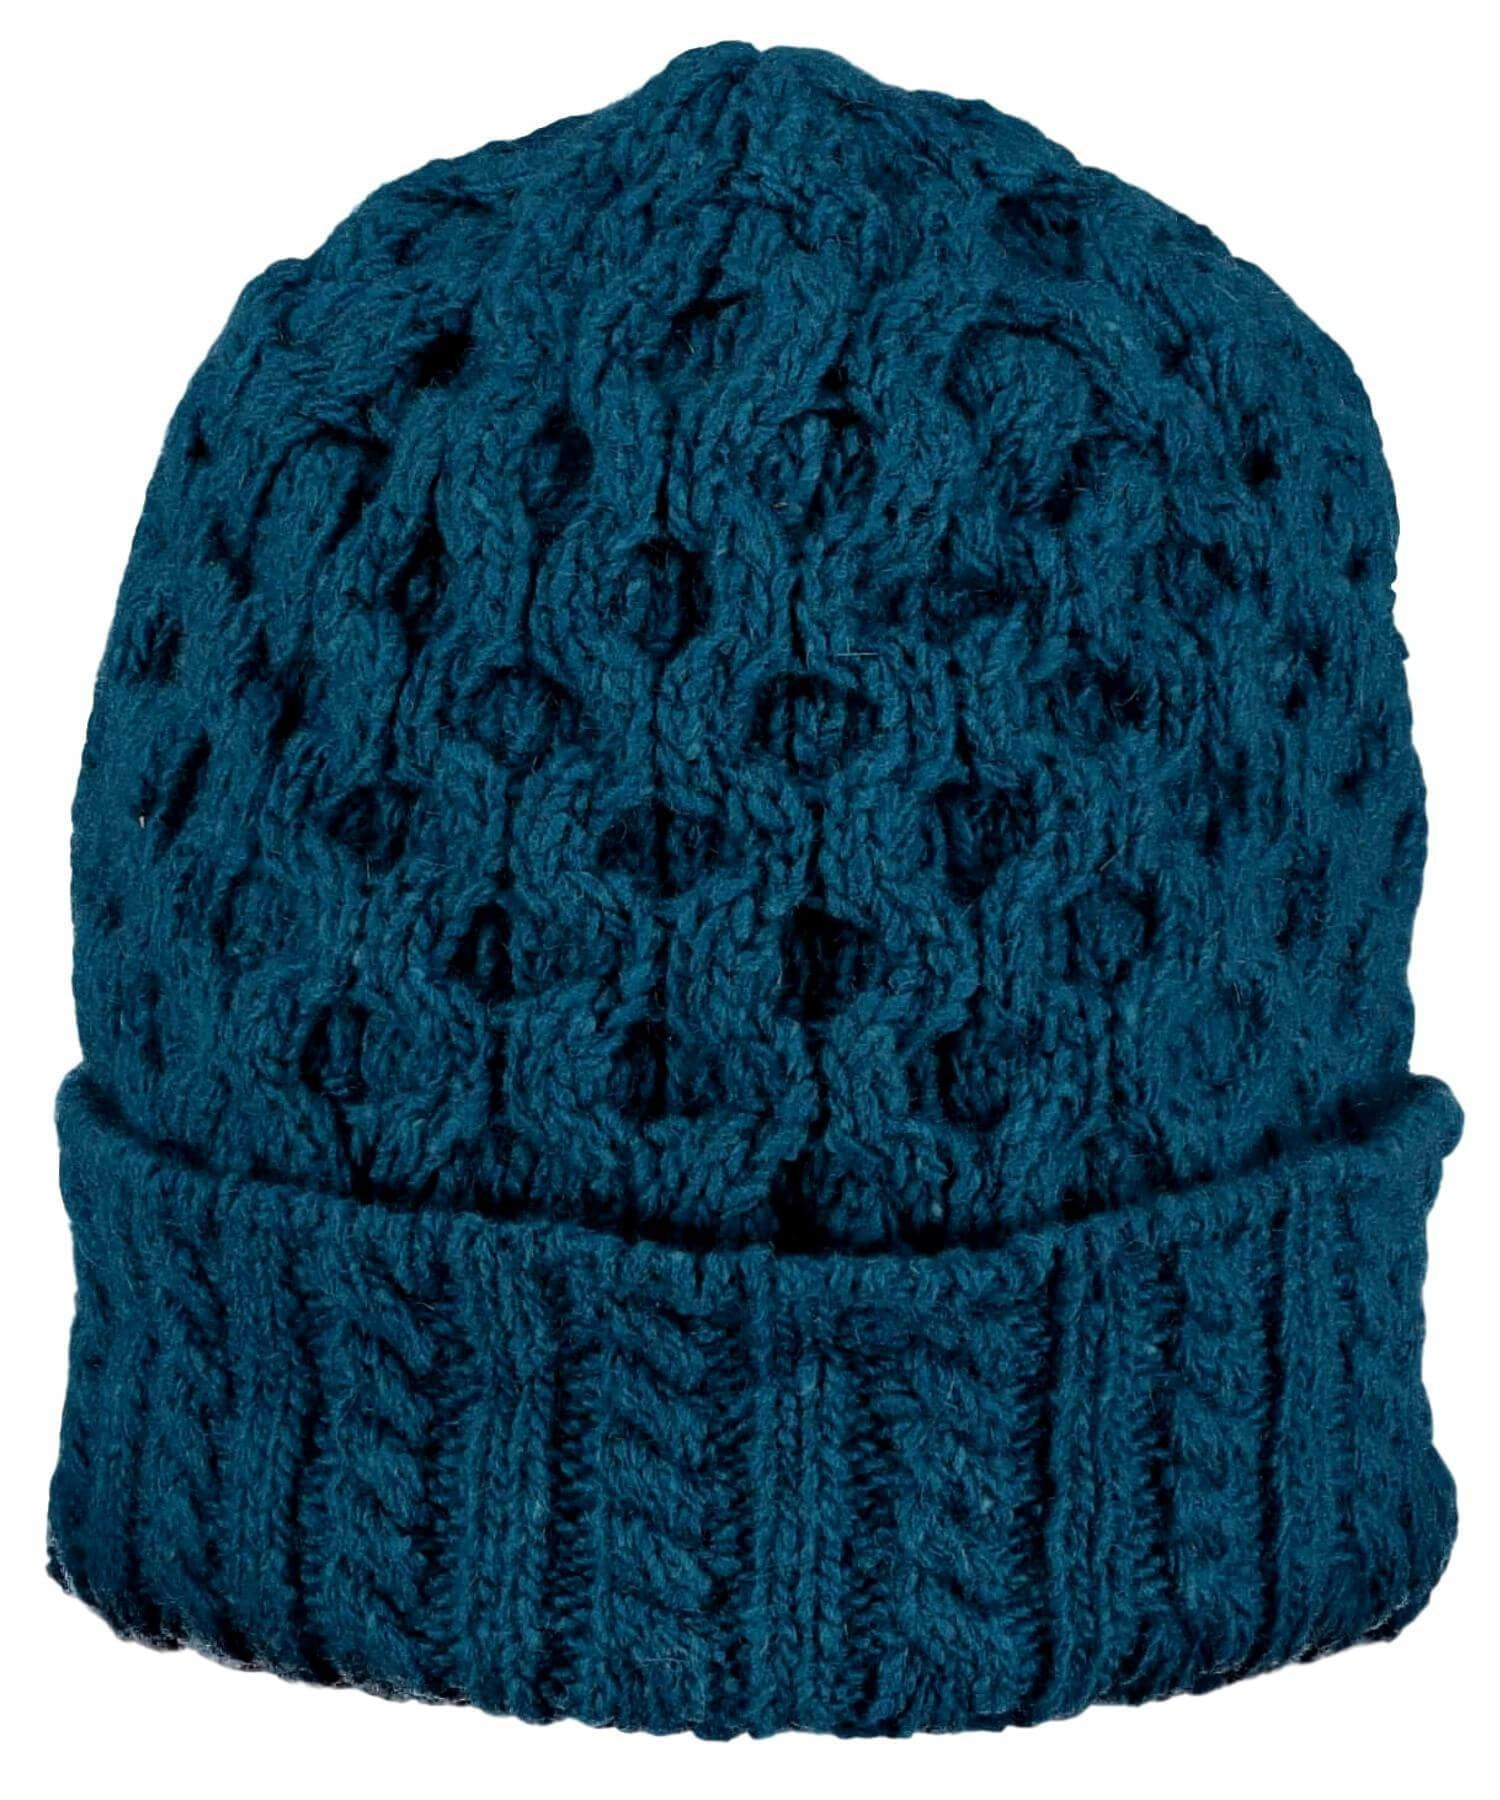 Luxe Aran Hat - Teal Harbour - [Irelands Eye] - Ladies Hats & Headbands - Irish Gifts